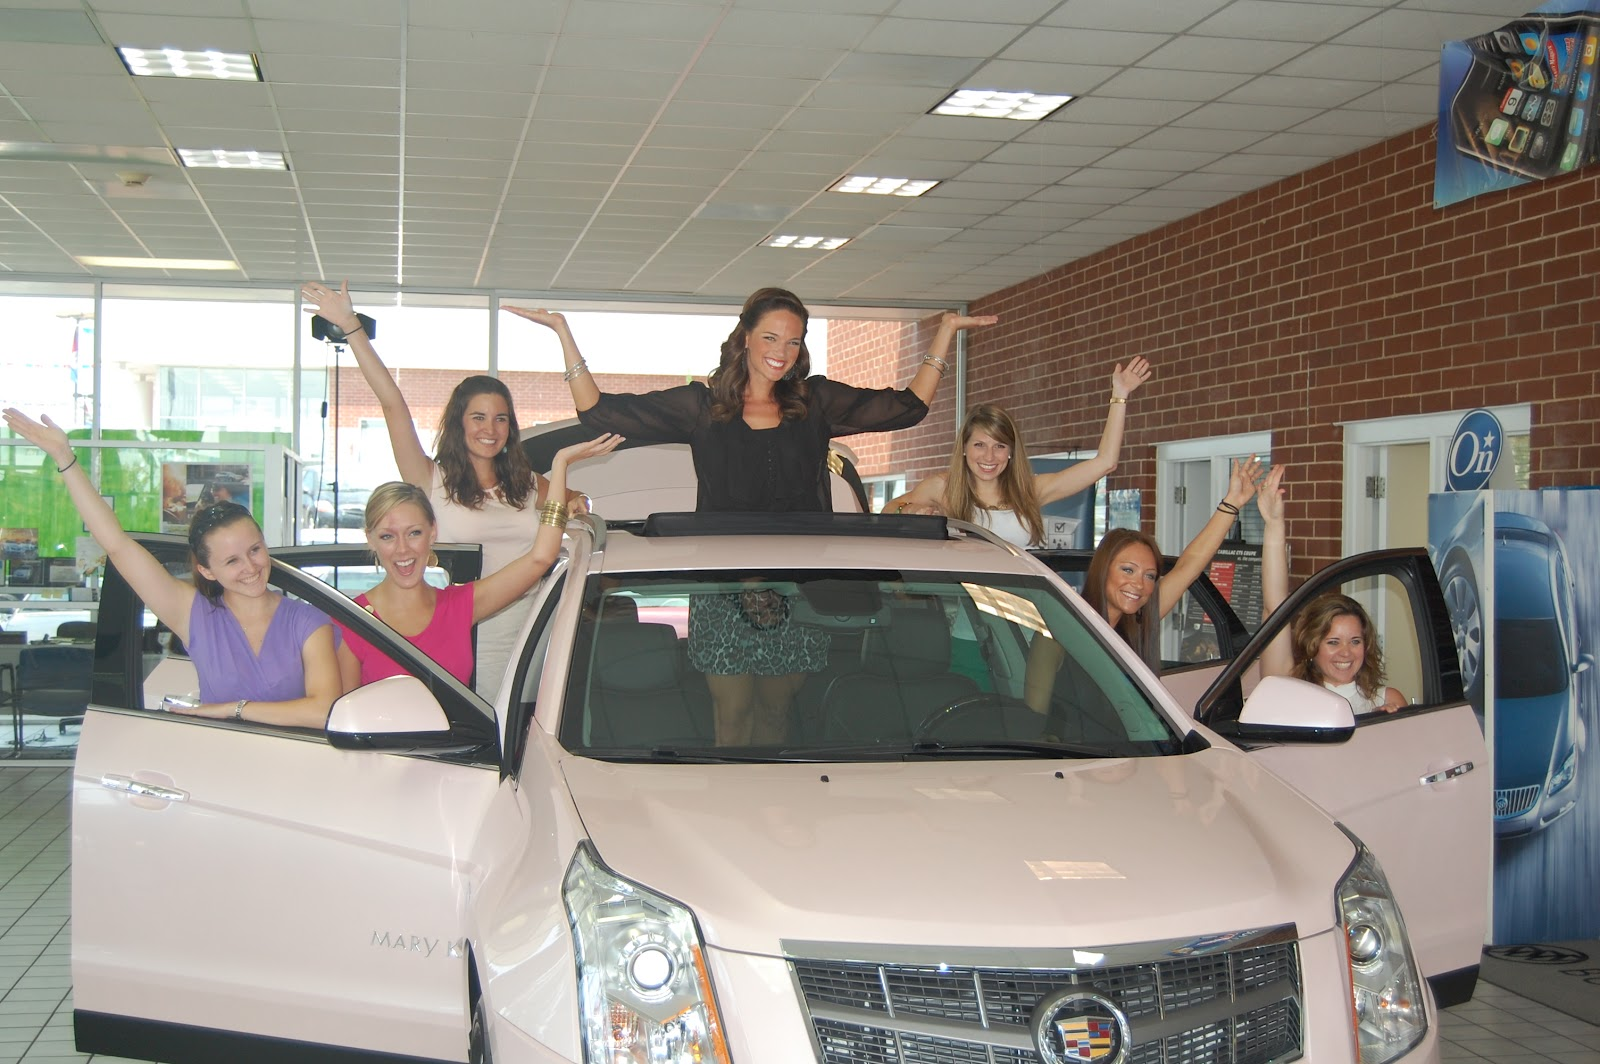 Marion Auto Sales >> The Randy Marion Automotive Group: Kelly Ingland Brock - Mary Kay Cadillac SRX